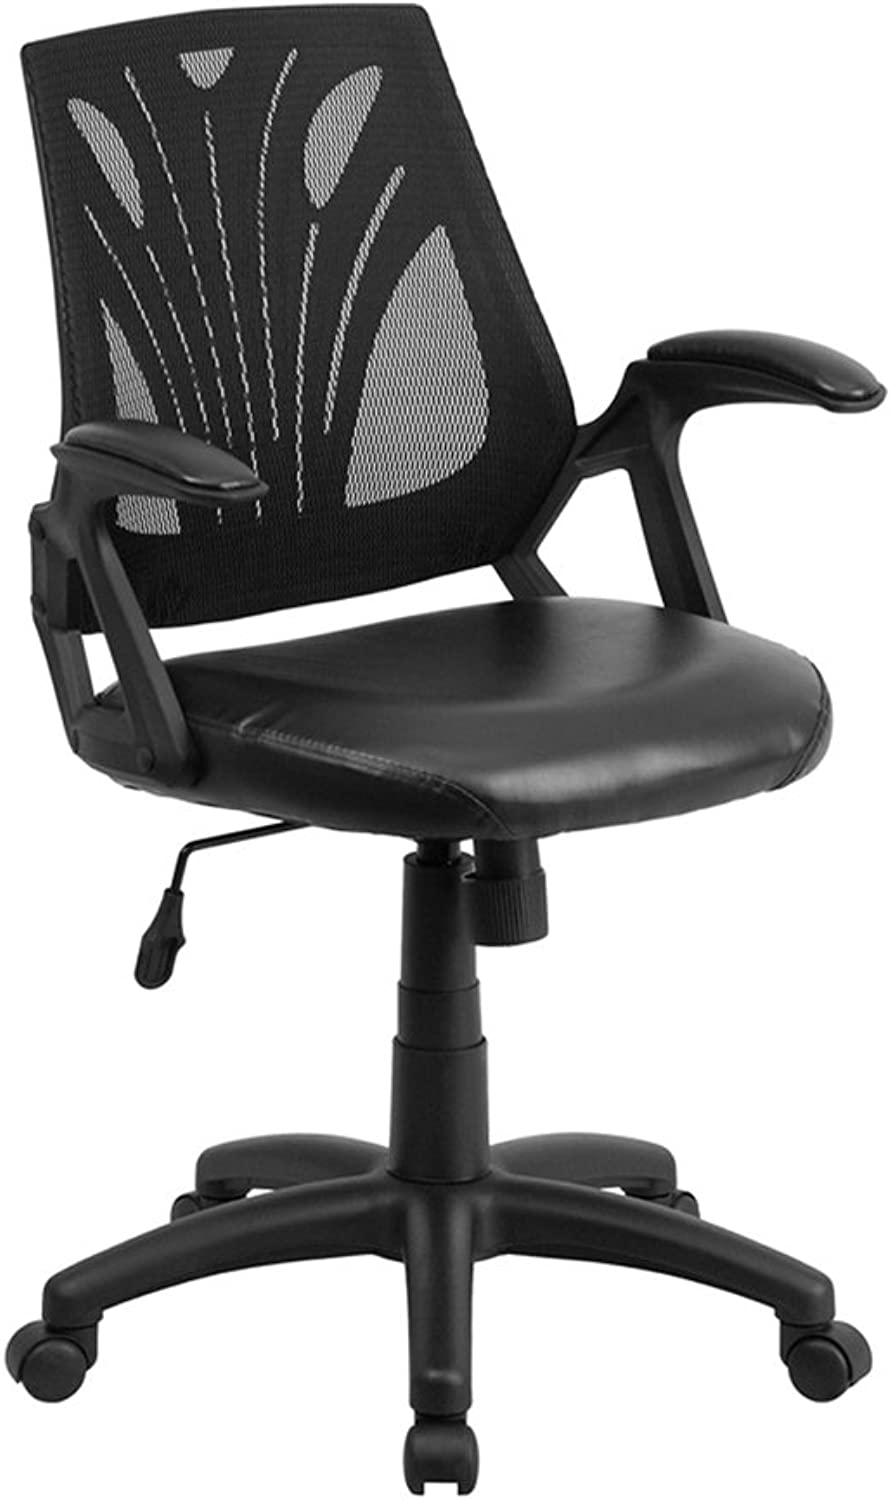 Offex OF-GO-WY-82-LEA-GG Mid-Back Black Mesh Chair with Leather Seat